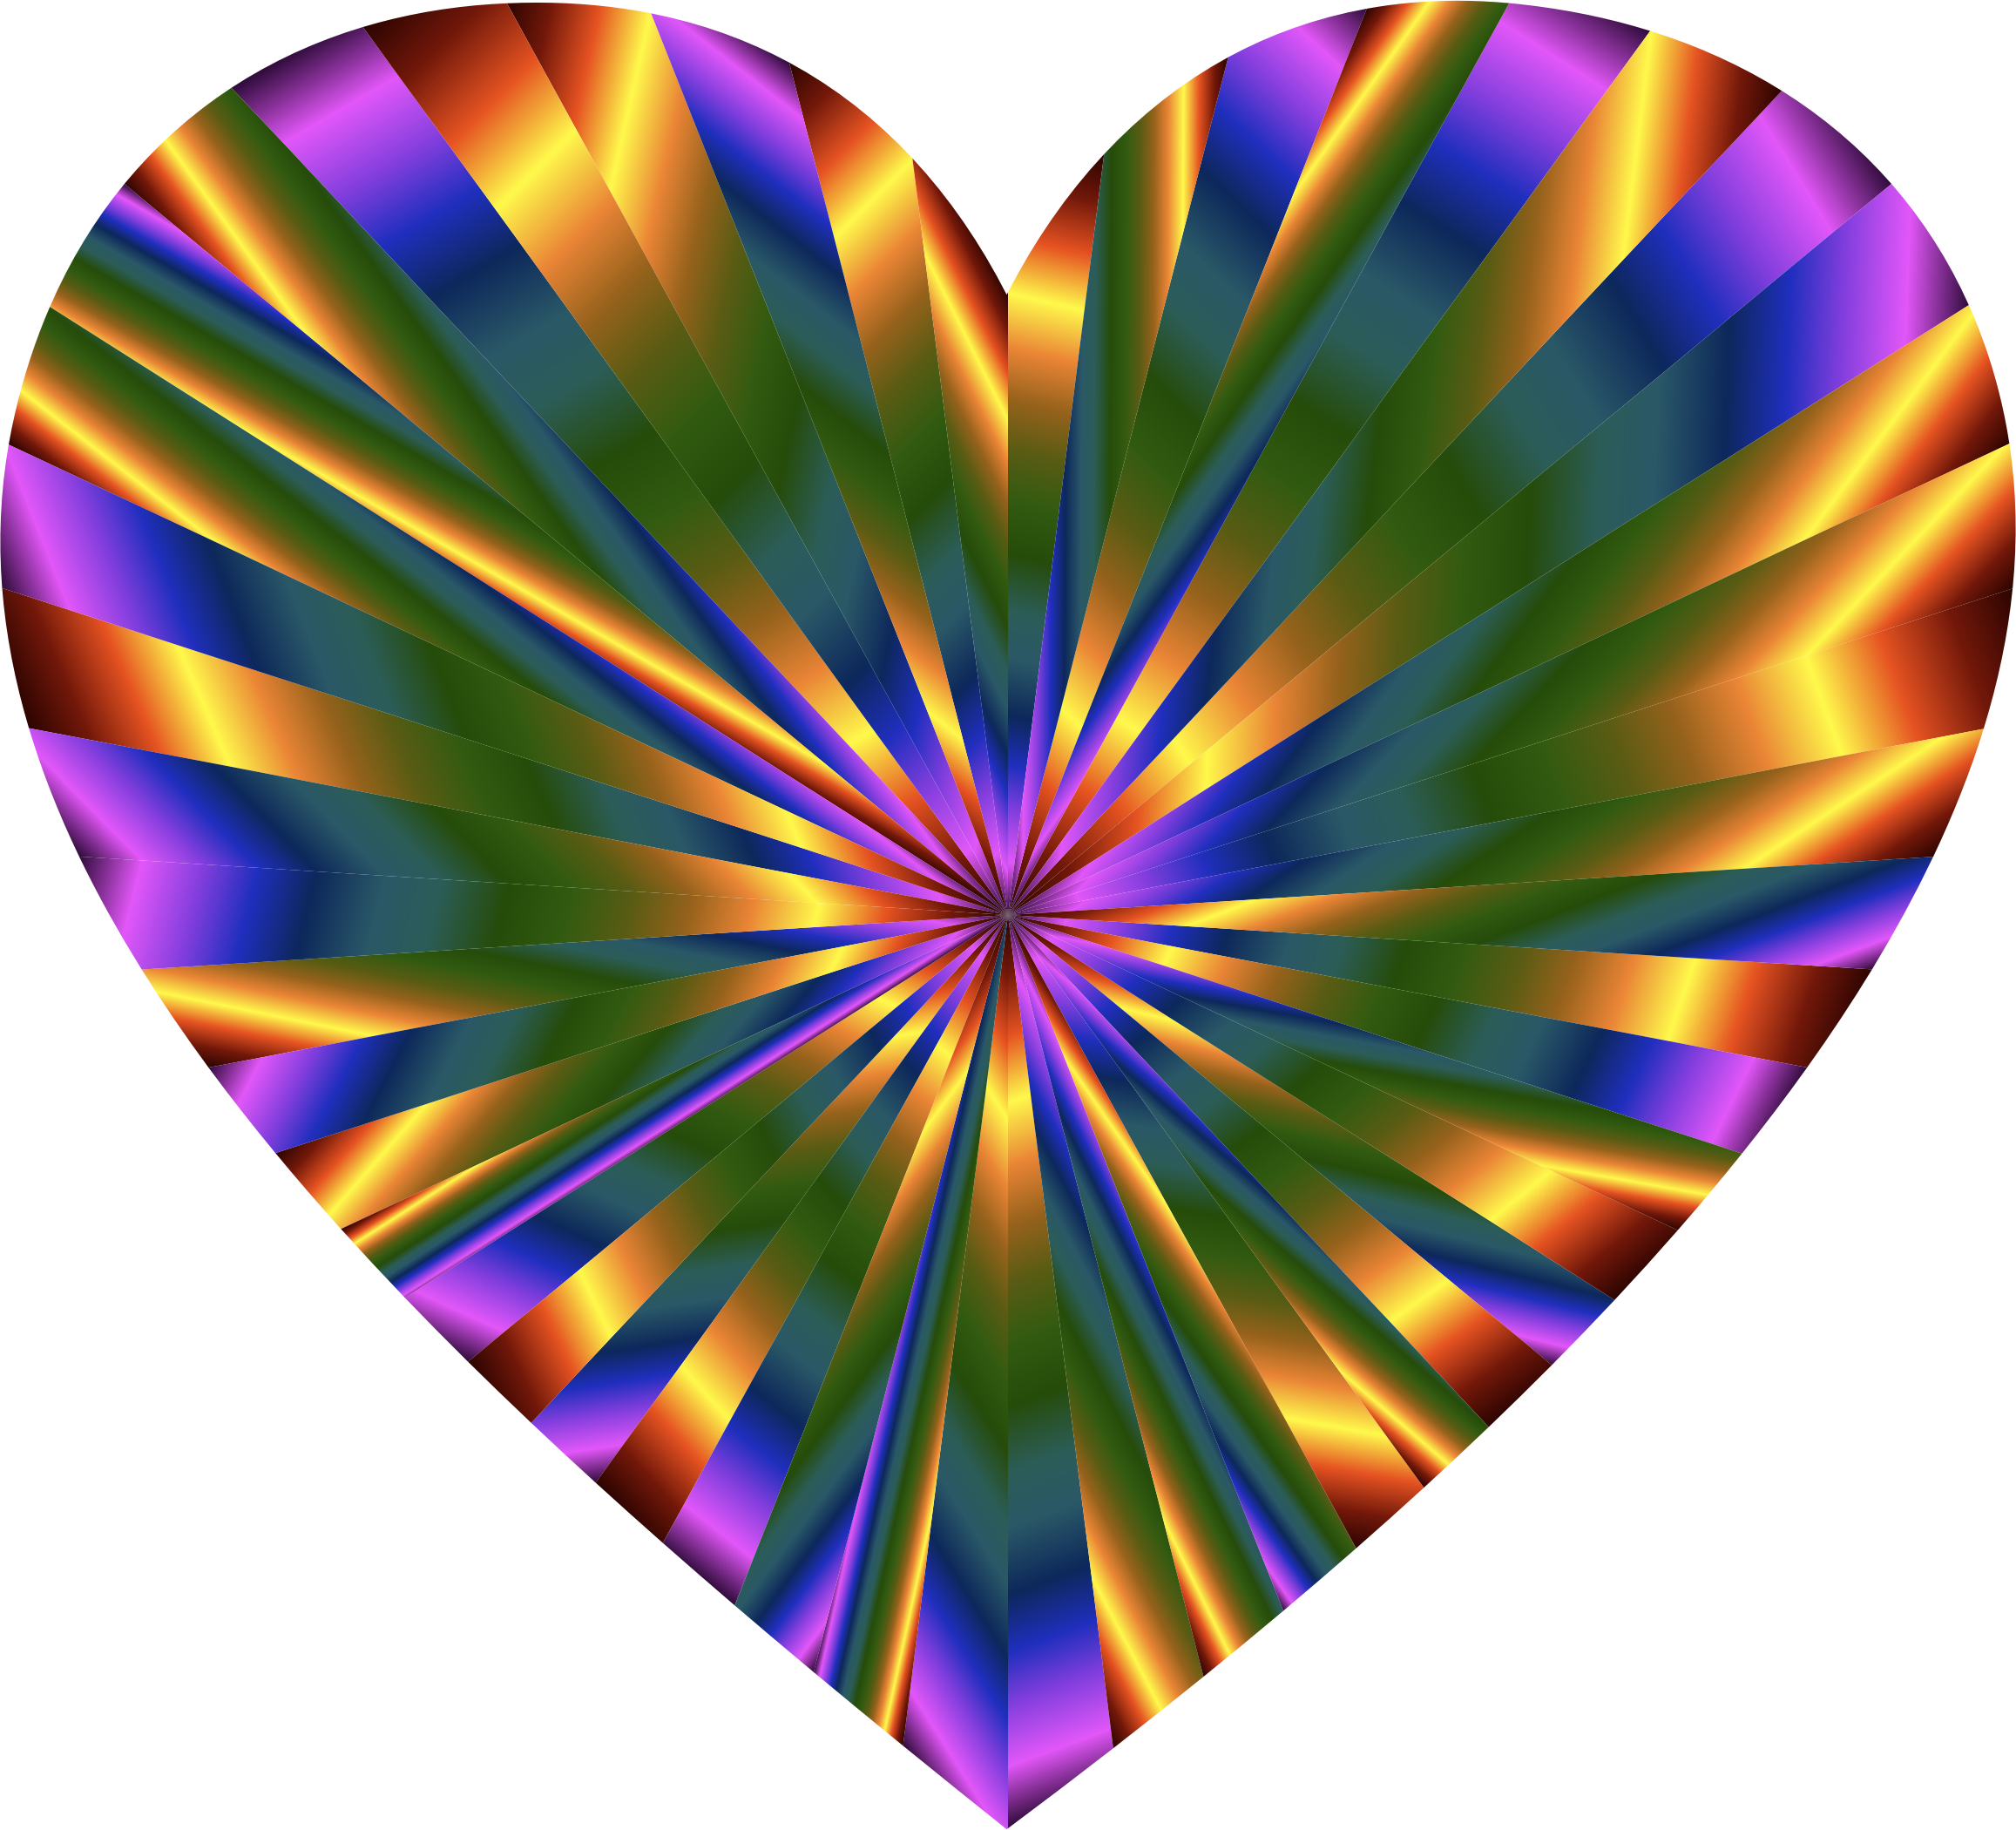 Starburst Heart 6 by GDJ